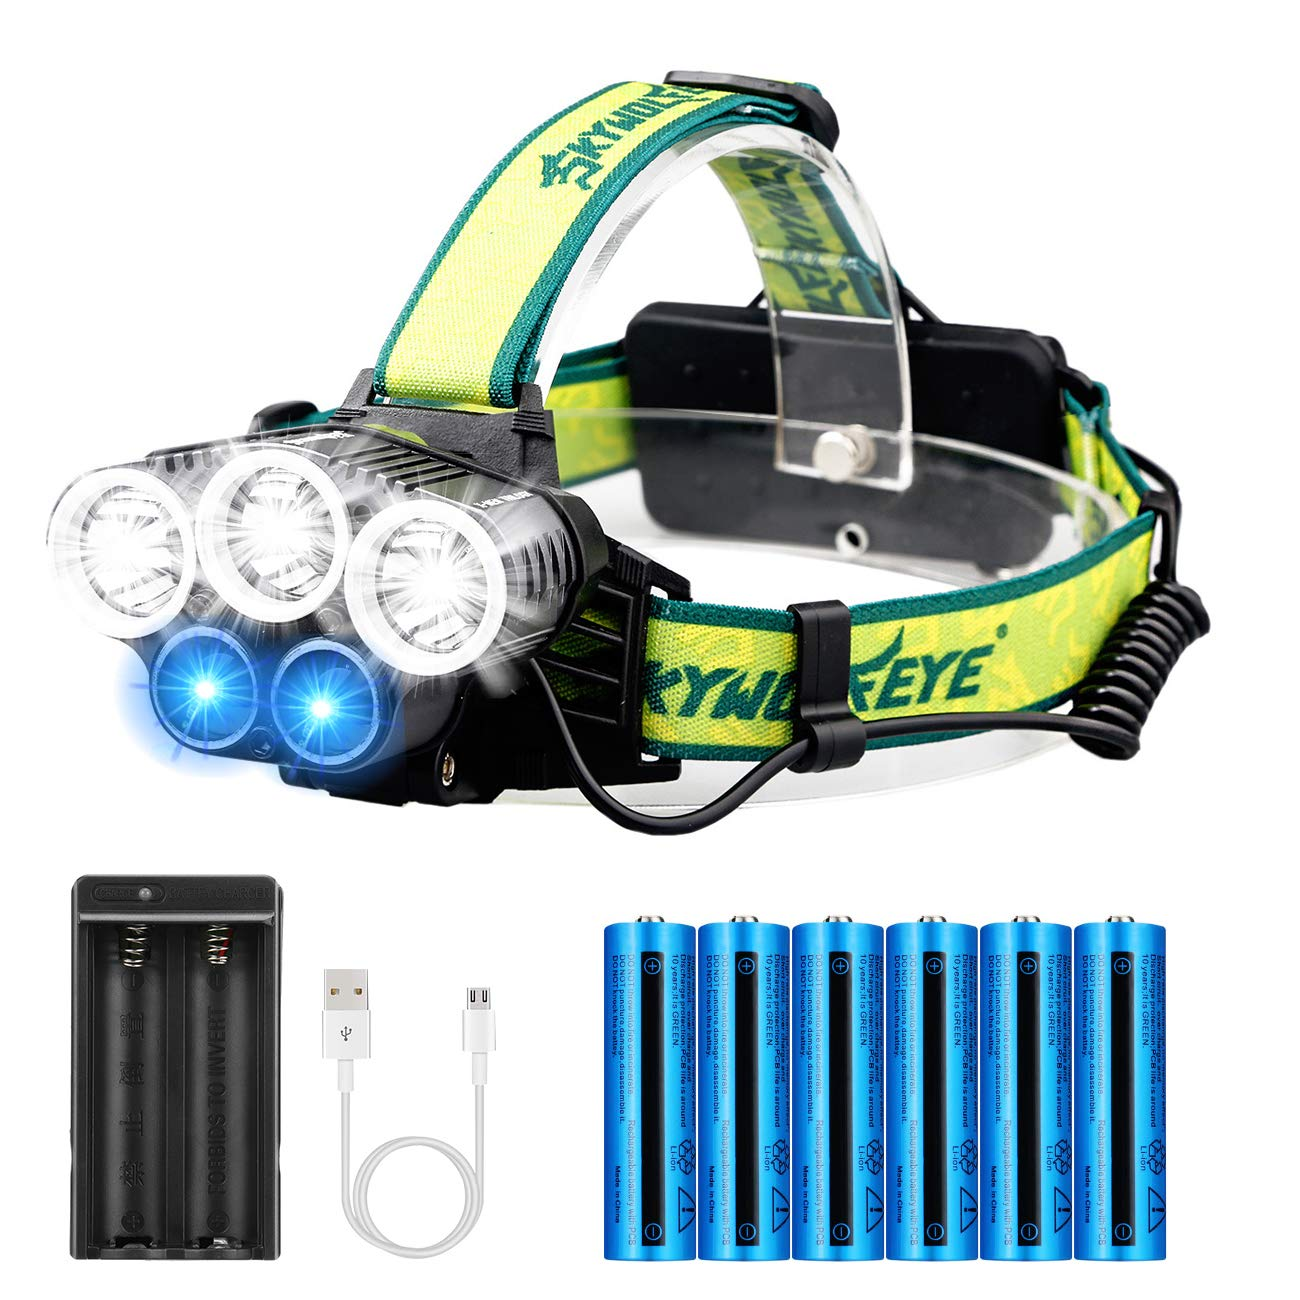 5 Led Headlamp Headlight Flashlight Kit,Blue Light,High Lumens,Usb Rechargeable,5 Modes, with 6Pcs 18650 3.7v 9900mAh Rechargeable Batteries and Rechargeable Battery Charger for Night Fishing Outdoor